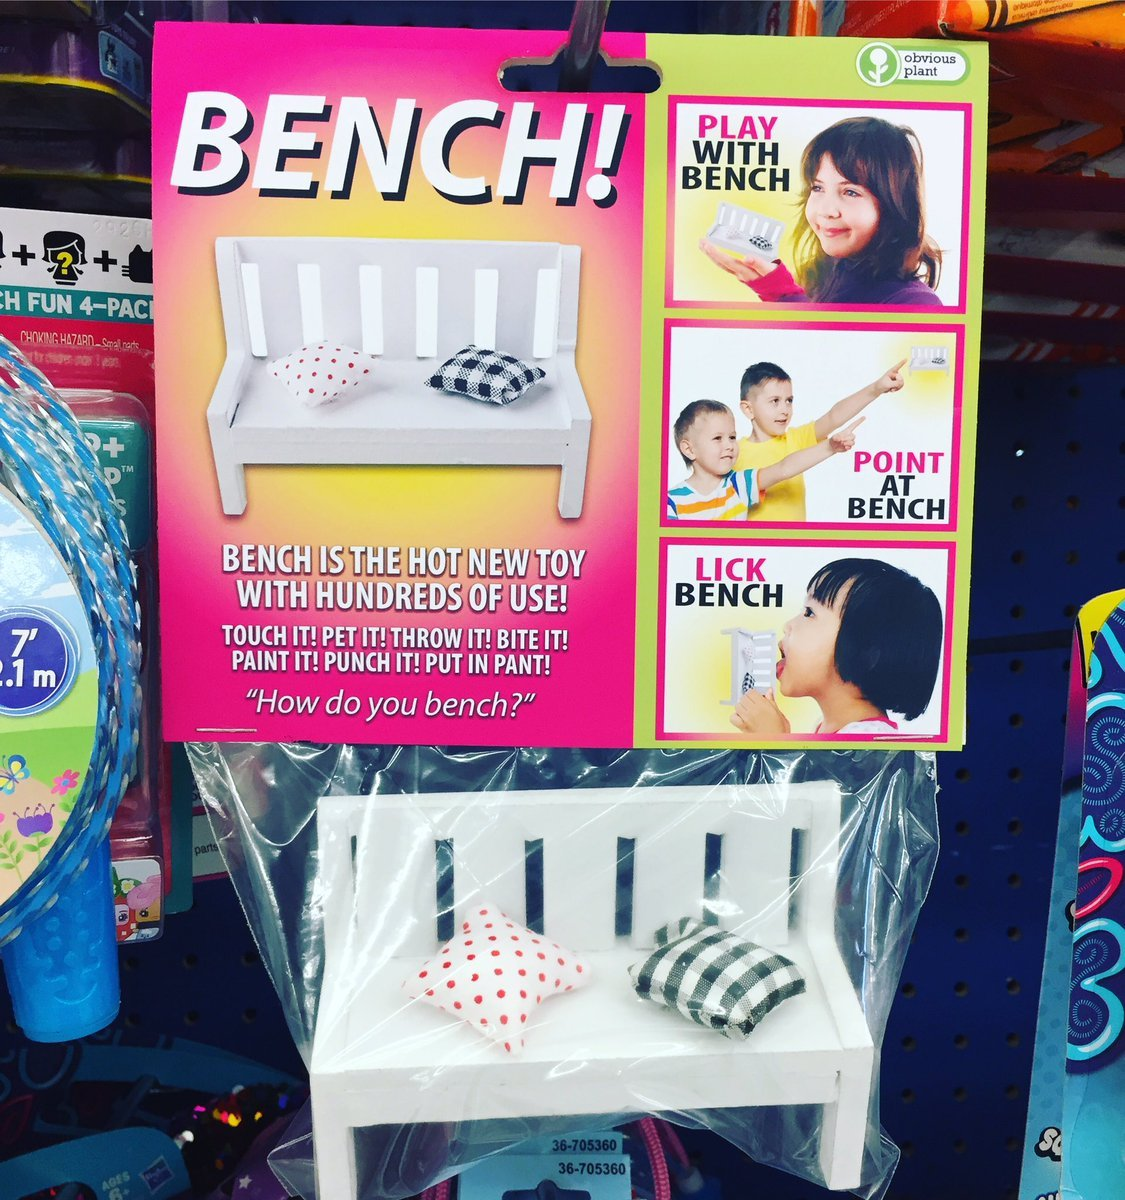 I need to lick the bench - meme